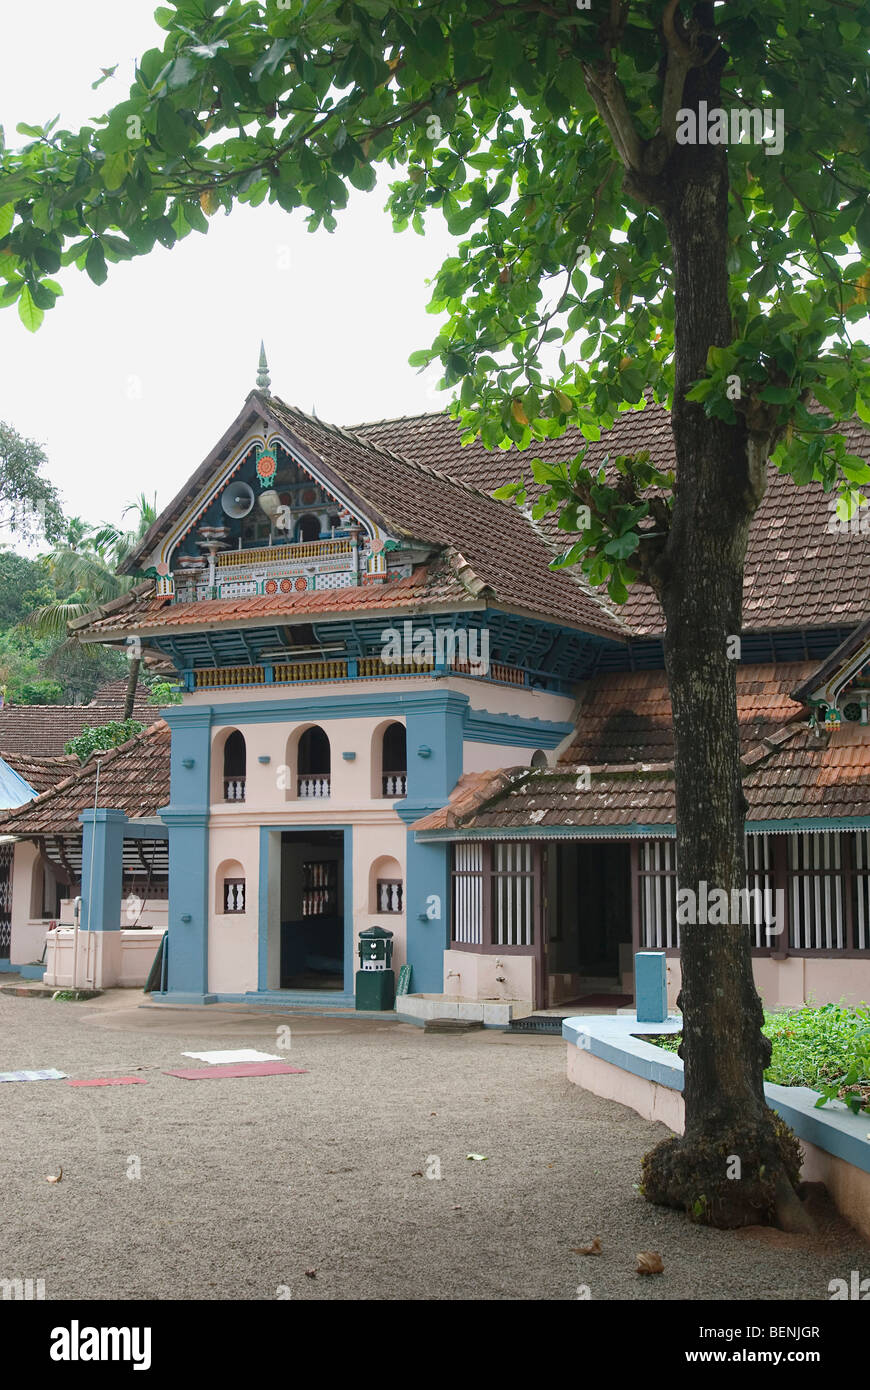 Thazhathangady Juma Masjid built around 1500 years ago by early Arab travelers during the time of the Cheraman empire - Stock Image